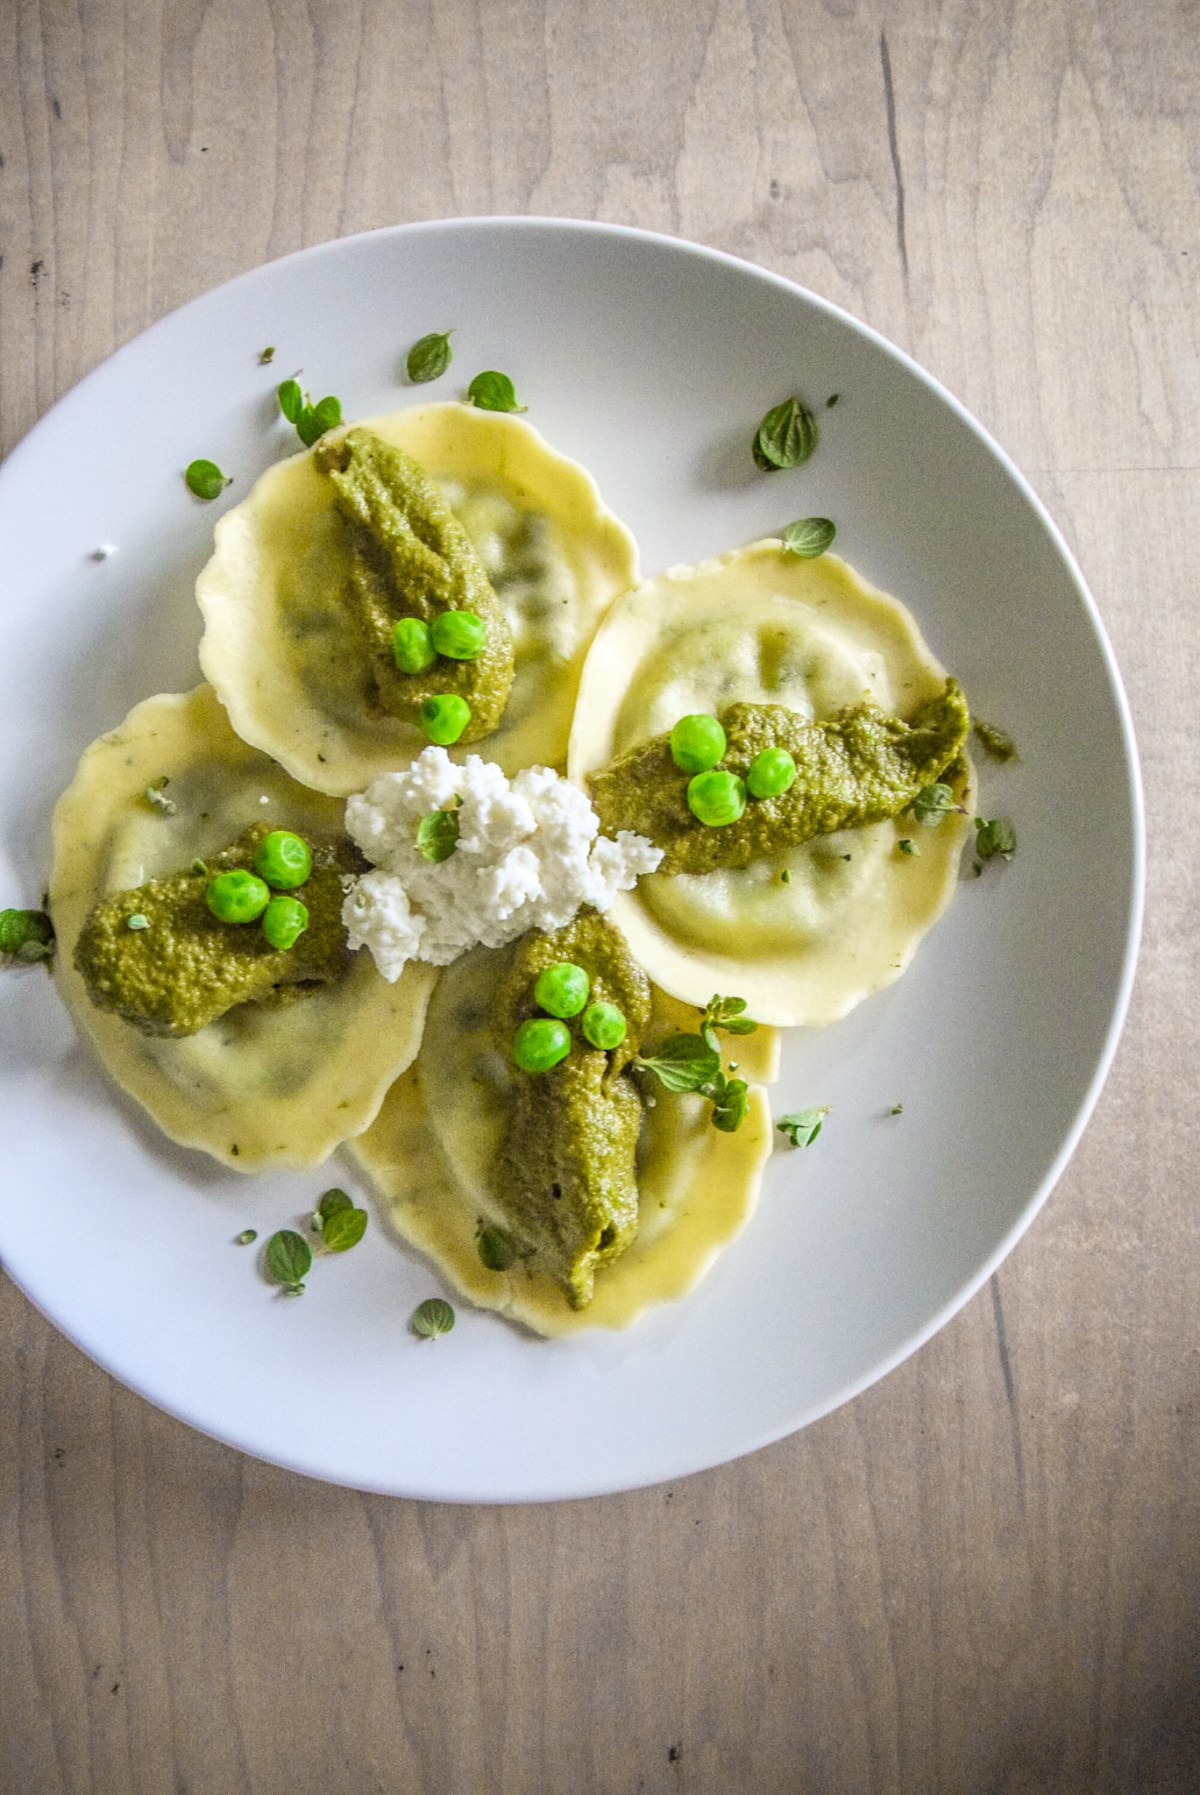 Marjoram Pea Pesto Ricotta Ravioli on plate from top vertical